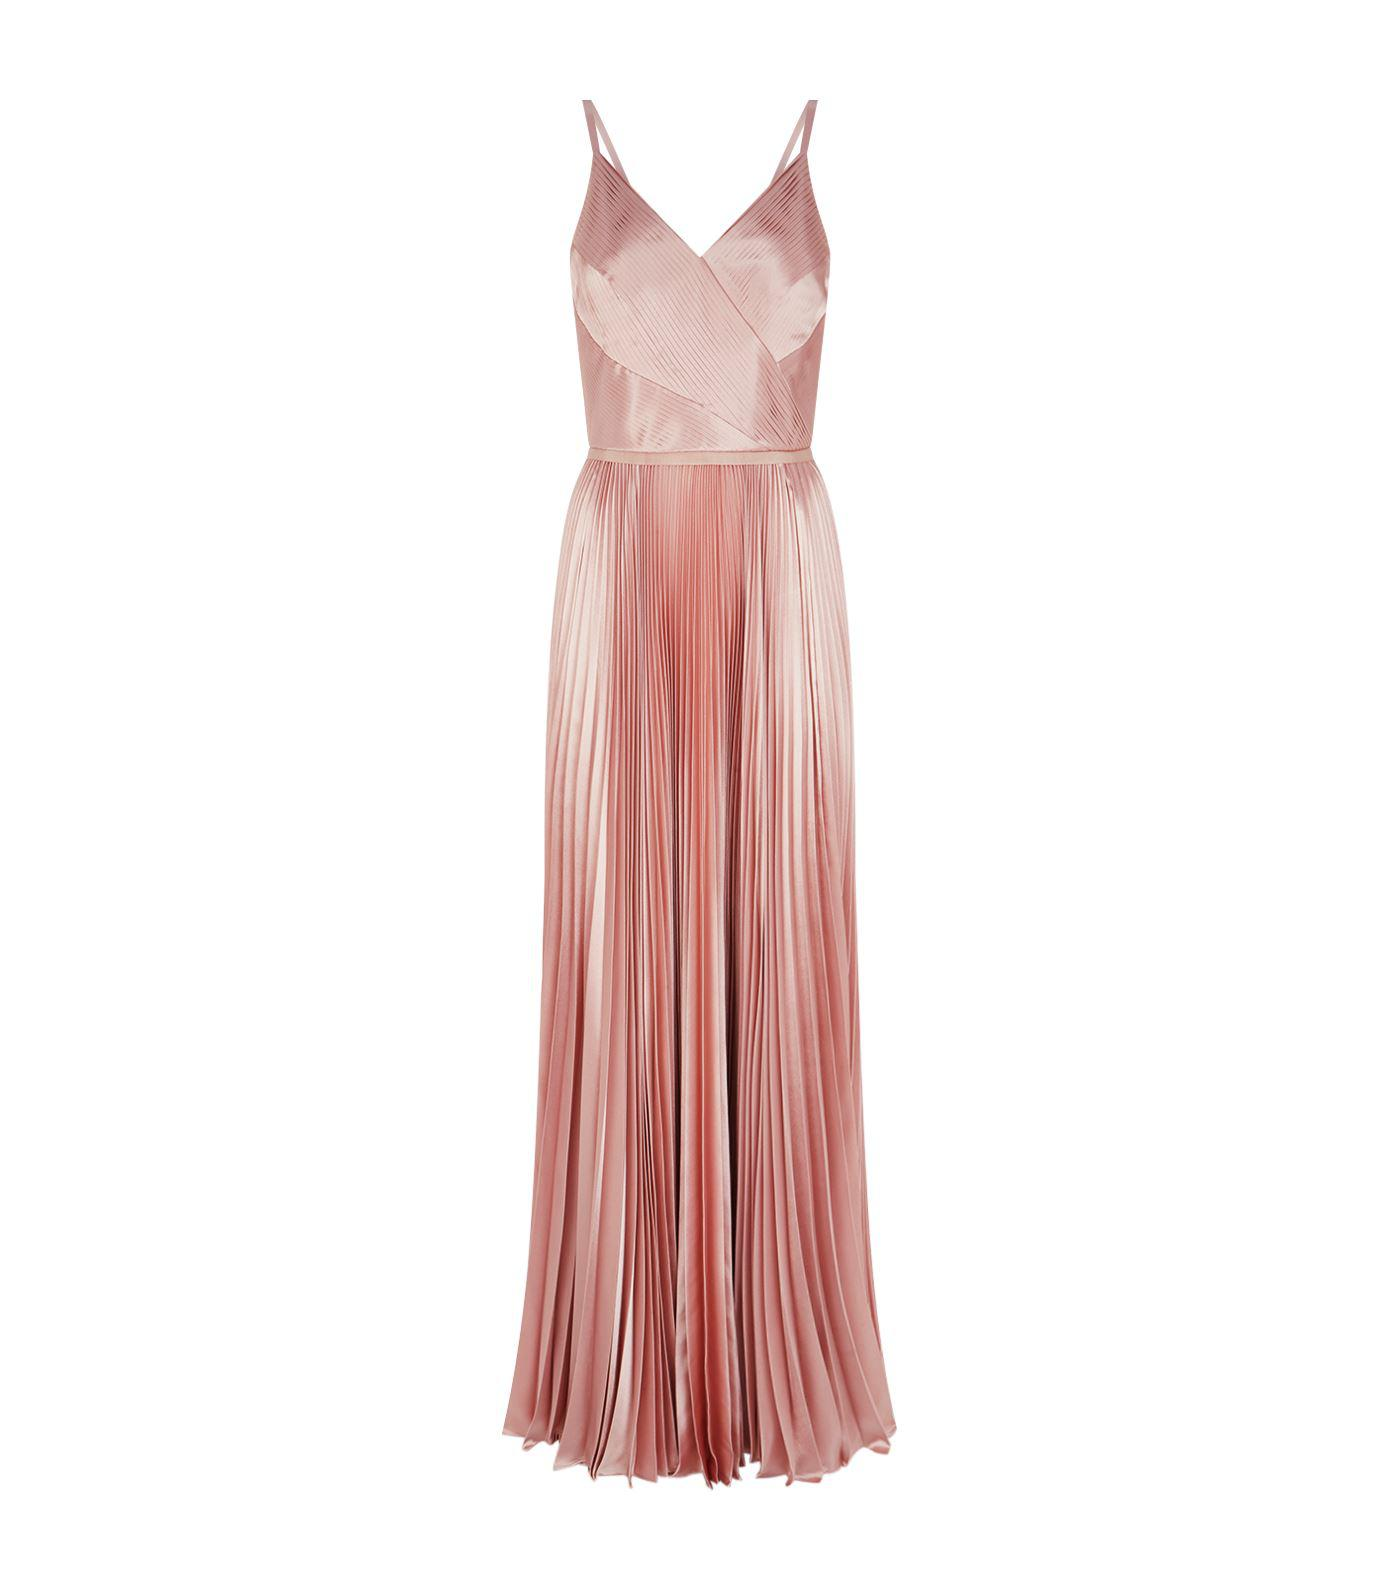 107e96ffdae7 Ted Baker Efrona Pleated Maxi Dress in Pink - Lyst